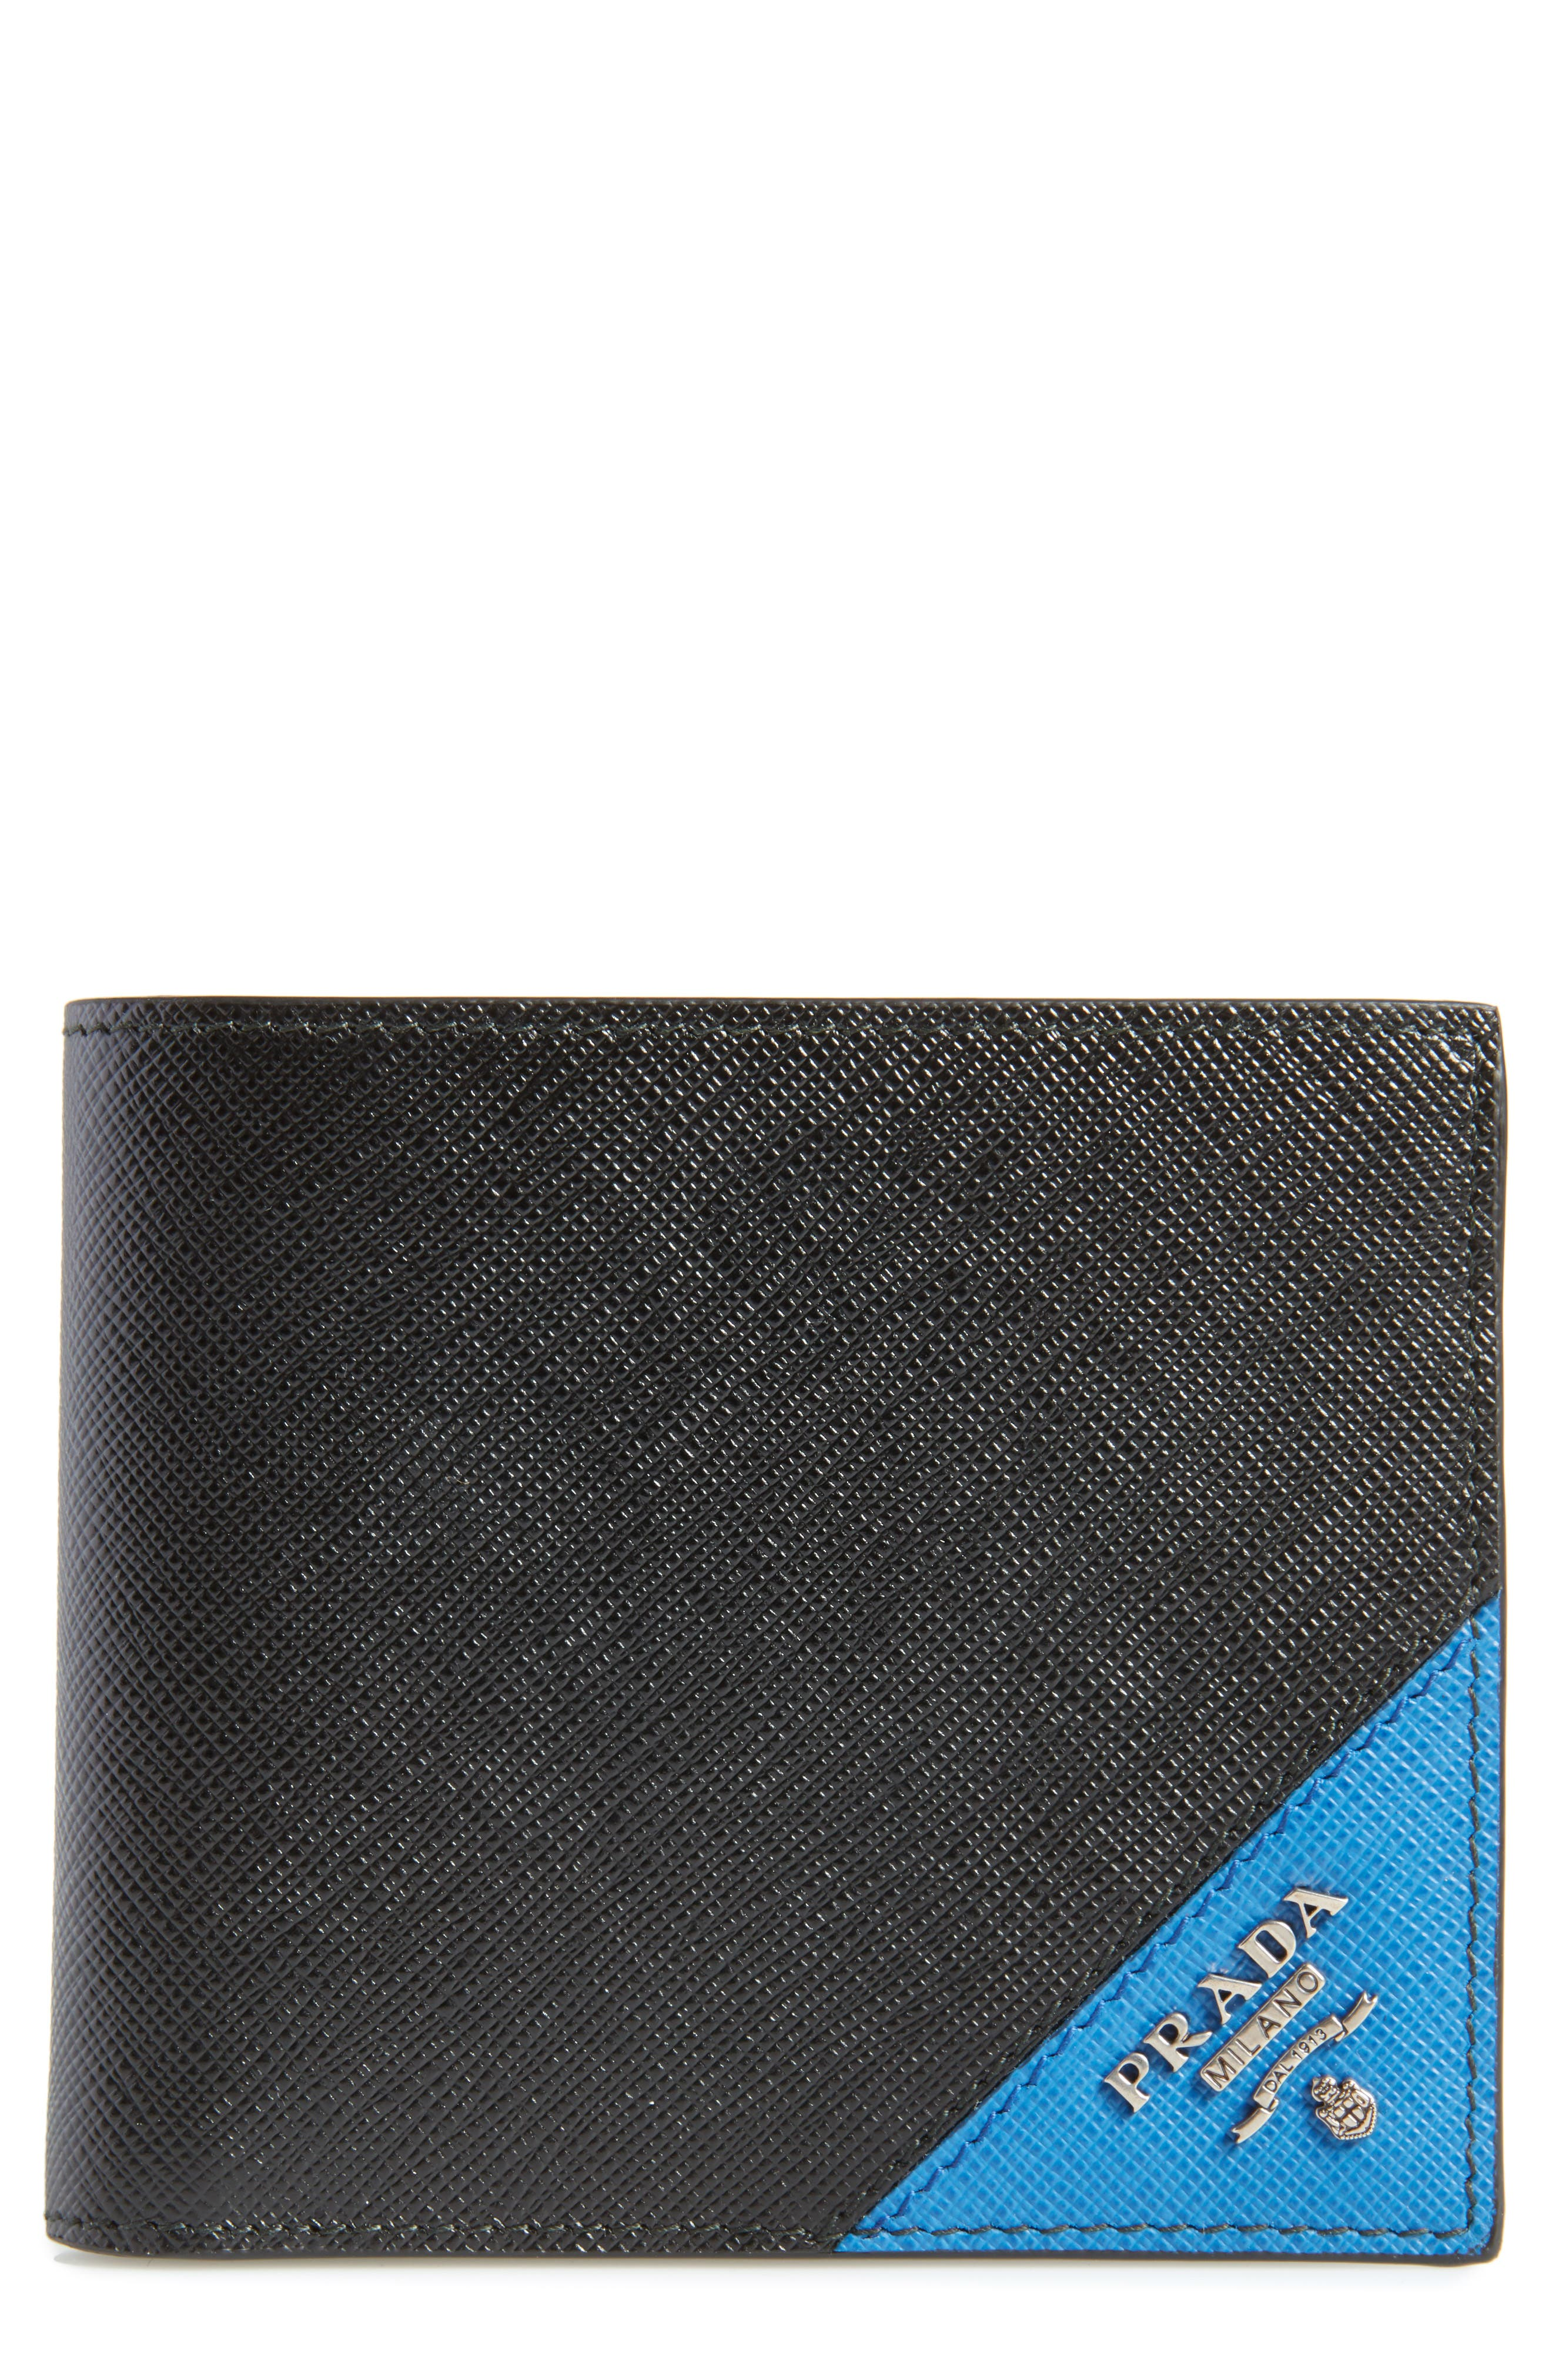 Saffiano Leather Billfold Wallet,                             Main thumbnail 1, color,                             NERO AND CERISE